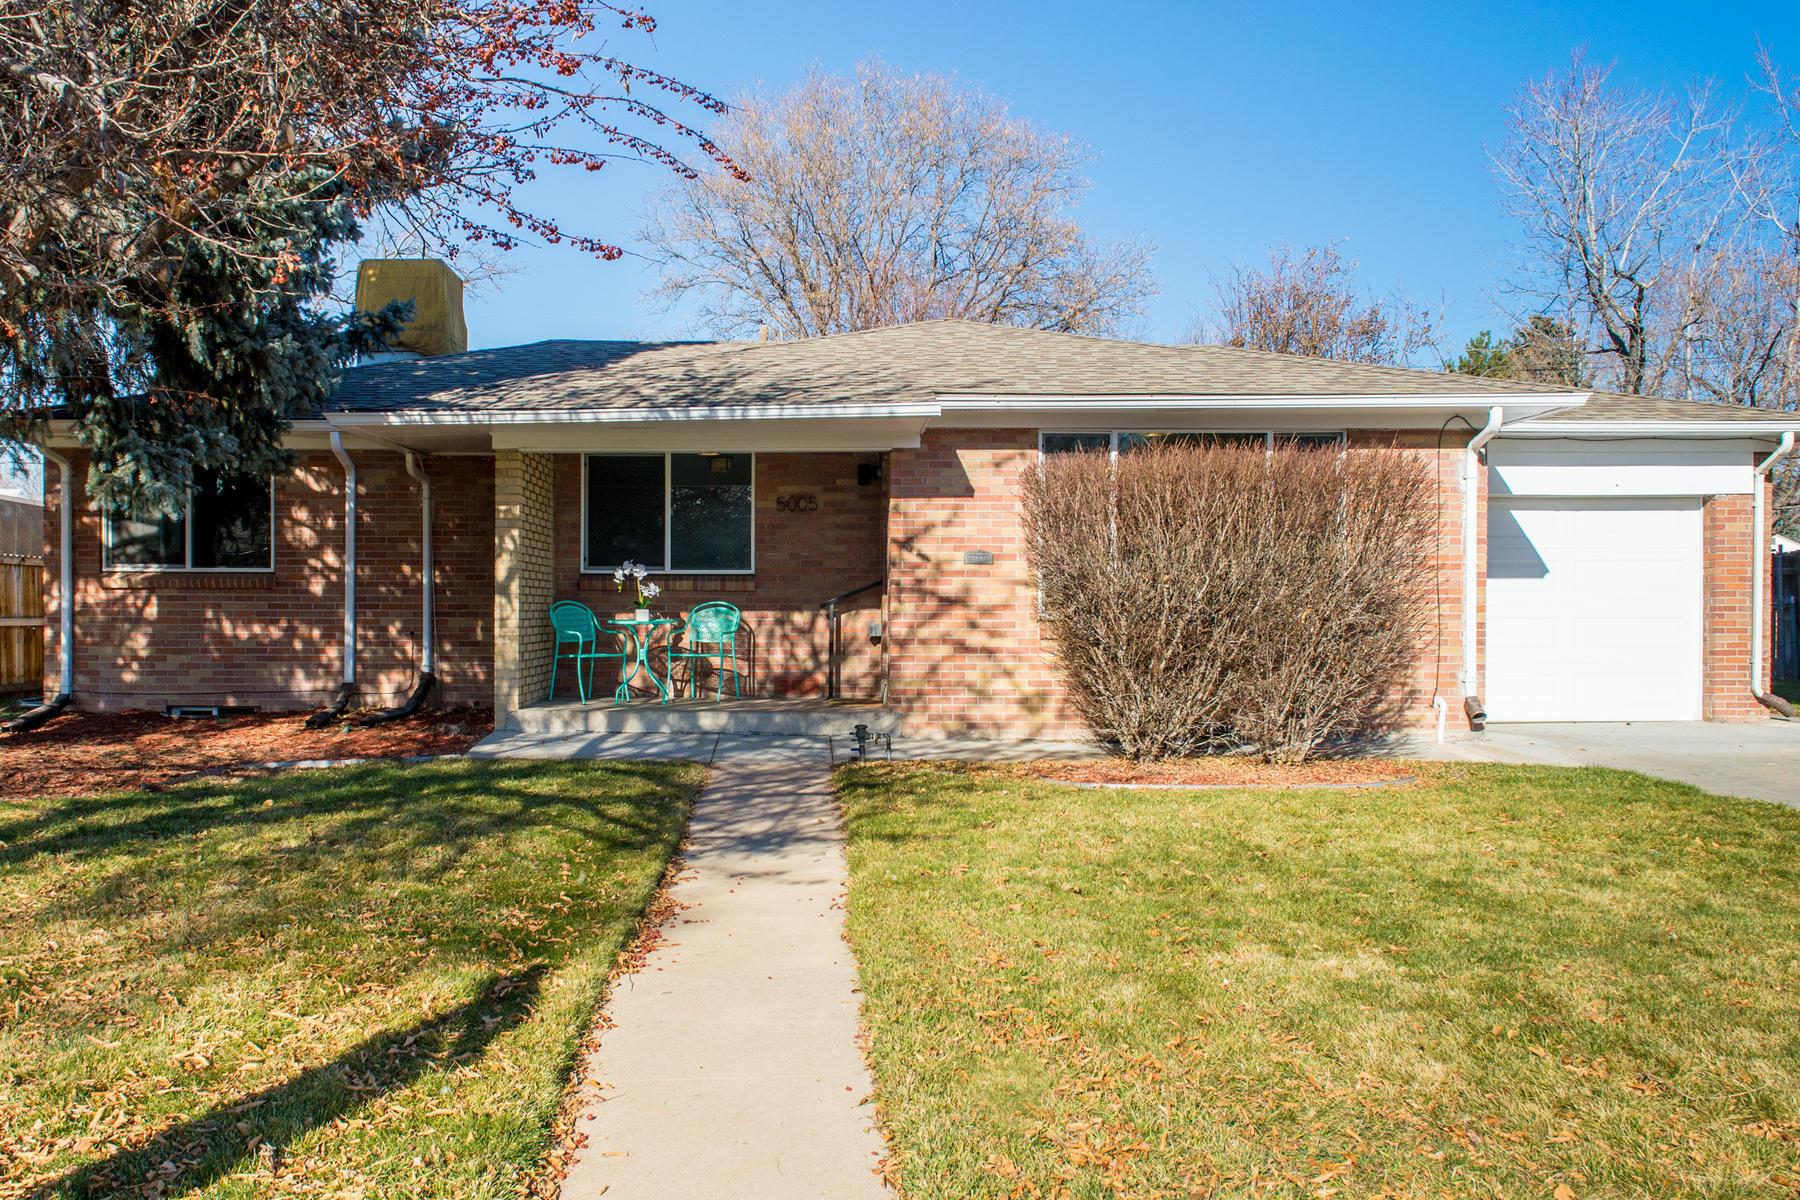 Single Family Home for Active at Updated Gem With A Full Finished Basement 5005 E Atlantic Pl Denver, Colorado 80222 United States